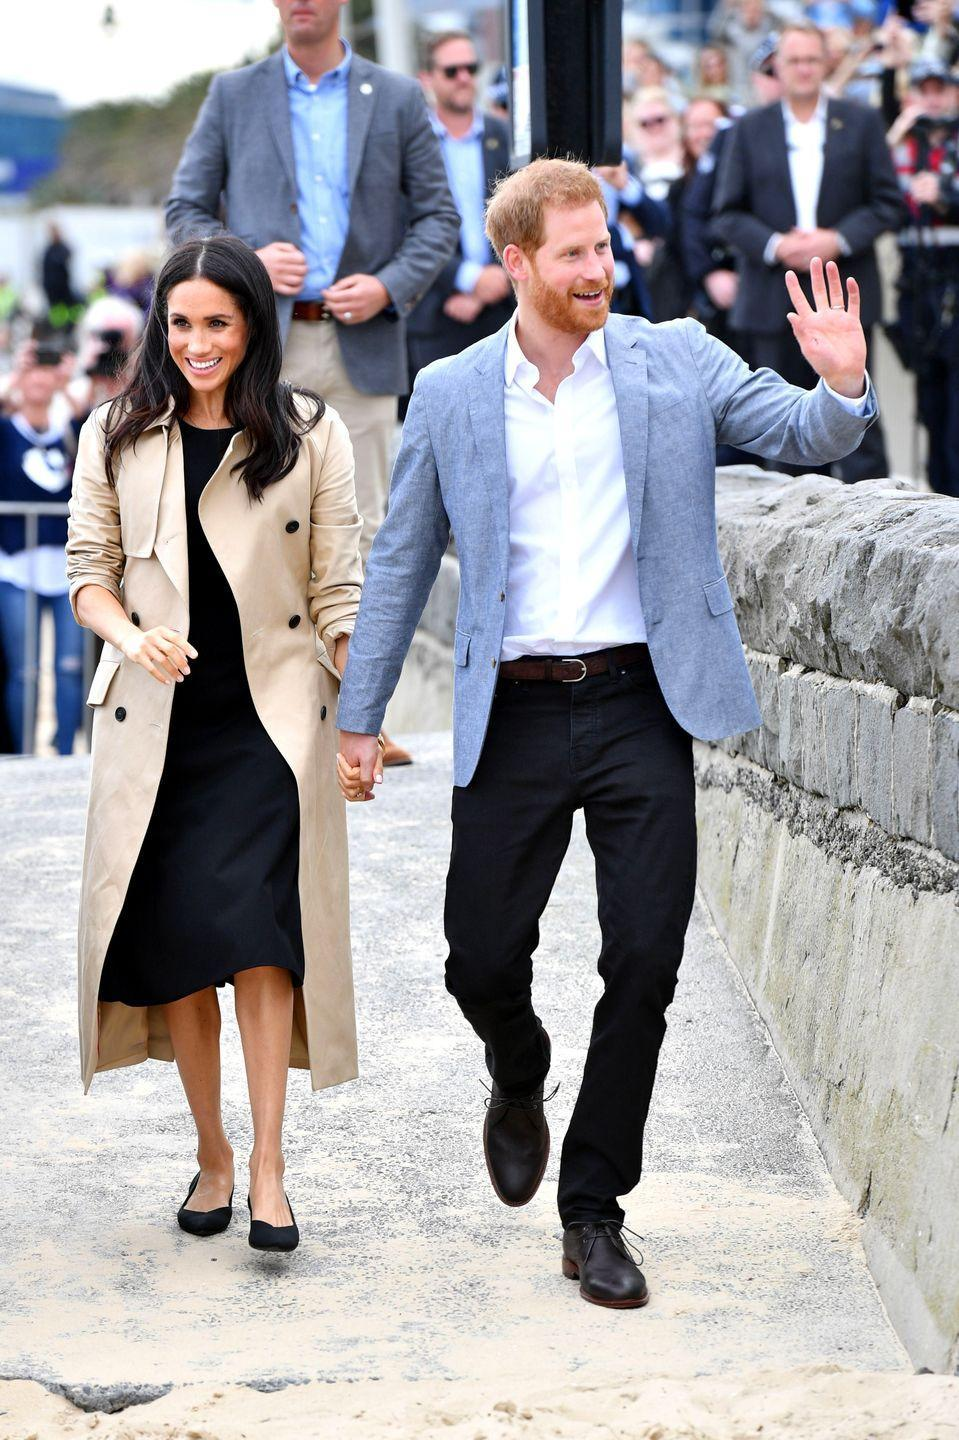 """<p>Harry and Meghan <a href=""""https://www.townandcountrymag.com/society/tradition/g23871878/meghan-markle-prince-harry-royal-tour-melbourne-australia-day-3-photos/"""" rel=""""nofollow noopener"""" target=""""_blank"""" data-ylk=""""slk:later visited a beach"""" class=""""link rapid-noclick-resp"""">later visited a beach</a> in Melbourne, where they each changed into <a href=""""https://www.townandcountrymag.com/style/fashion-trends/a23890910/meghan-markle-club-monaco-dress-melbourne-australia-royal-tour-photos/"""" rel=""""nofollow noopener"""" target=""""_blank"""" data-ylk=""""slk:more casual outfits"""" class=""""link rapid-noclick-resp"""">more casual outfits</a>. For this event, the Duchess wore<a href=""""https://go.redirectingat.com?id=74968X1596630&url=http%3A%2F%2Fwww.clubmonaco.com%2Fproduct%2Findex.jsp%3FproductId%3D157223966%26size%3D10%252C4%252C8%252C00%252C6%252C2%252C12%252C0%26color%3D1174801&sref=https%3A%2F%2Fwww.townandcountrymag.com%2Fstyle%2Ffashion-trends%2Fg3272%2Fmeghan-markle-preppy-style%2F"""" rel=""""nofollow noopener"""" target=""""_blank"""" data-ylk=""""slk:a sleek black dress"""" class=""""link rapid-noclick-resp""""> a sleek black dress</a> by Club Monaco with a pair of pointed toe flats by Rothy's.<br></p><p><a class=""""link rapid-noclick-resp"""" href=""""https://go.redirectingat.com?id=74968X1596630&url=http%3A%2F%2Fwww.clubmonaco.com%2Fproduct%2Findex.jsp%3FproductId%3D157223966&sref=https%3A%2F%2Fwww.townandcountrymag.com%2Fstyle%2Ffashion-trends%2Fg3272%2Fmeghan-markle-preppy-style%2F"""" rel=""""nofollow noopener"""" target=""""_blank"""" data-ylk=""""slk:SHOP NOW"""">SHOP NOW</a> <em>Miguellina Dress by <em>Club Monaco</em>, $268</em></p><p><a class=""""link rapid-noclick-resp"""" href=""""https://go.redirectingat.com?id=74968X1596630&url=https%3A%2F%2Frothys.com%2Fproducts%2Fthe-point-black-solid%3FsiteID%3DTnL5HPStwNw-SRqL_yTmfs9XjHG3noa4Zg&sref=https%3A%2F%2Fwww.townandcountrymag.com%2Fstyle%2Ffashion-trends%2Fg3272%2Fmeghan-markle-preppy-style%2F"""" rel=""""nofollow noopener"""" target=""""_blank"""" data-ylk=""""slk:SHOP NOW"""">SHOP NOW </a><em>Black Solid Flat"""